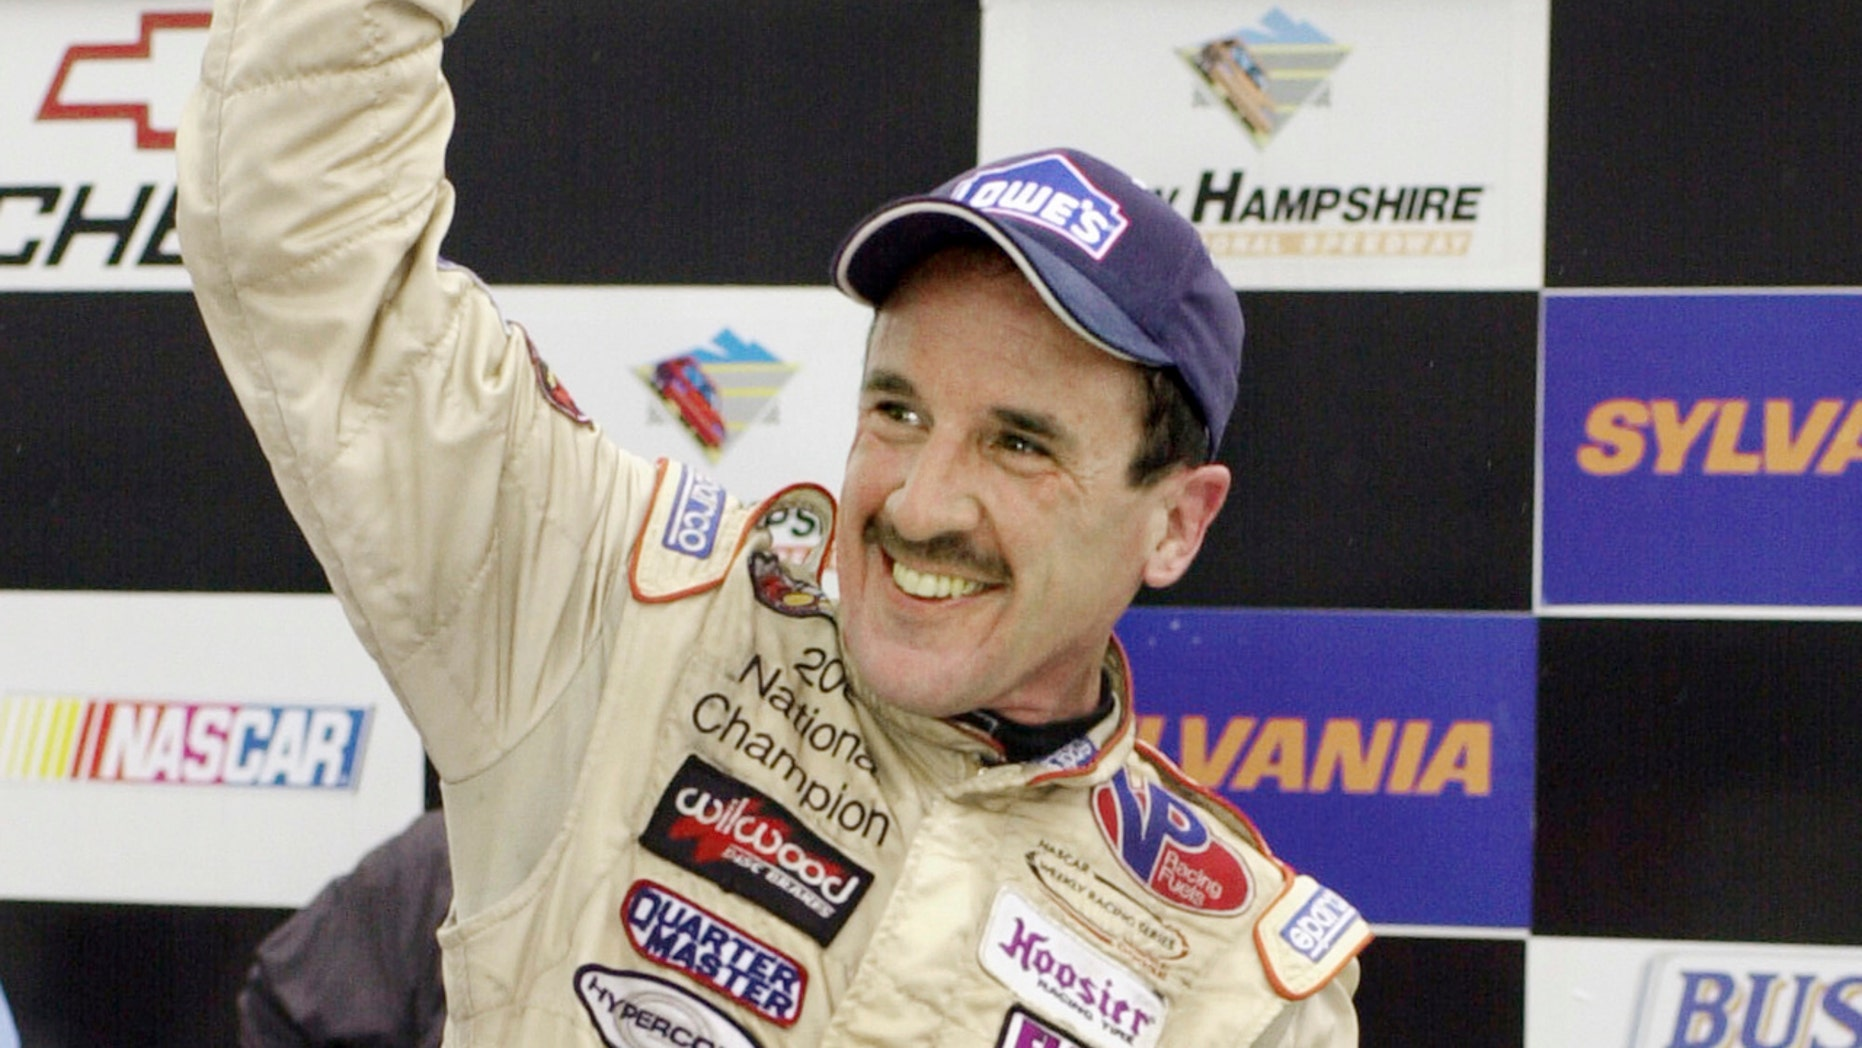 In this Sept. 16, 2005 file photo, Ted Christopher celebrates his victory in the Busch North Series Sylvania 125 at the New Hampshire International Speedway in Loudon, N.H.